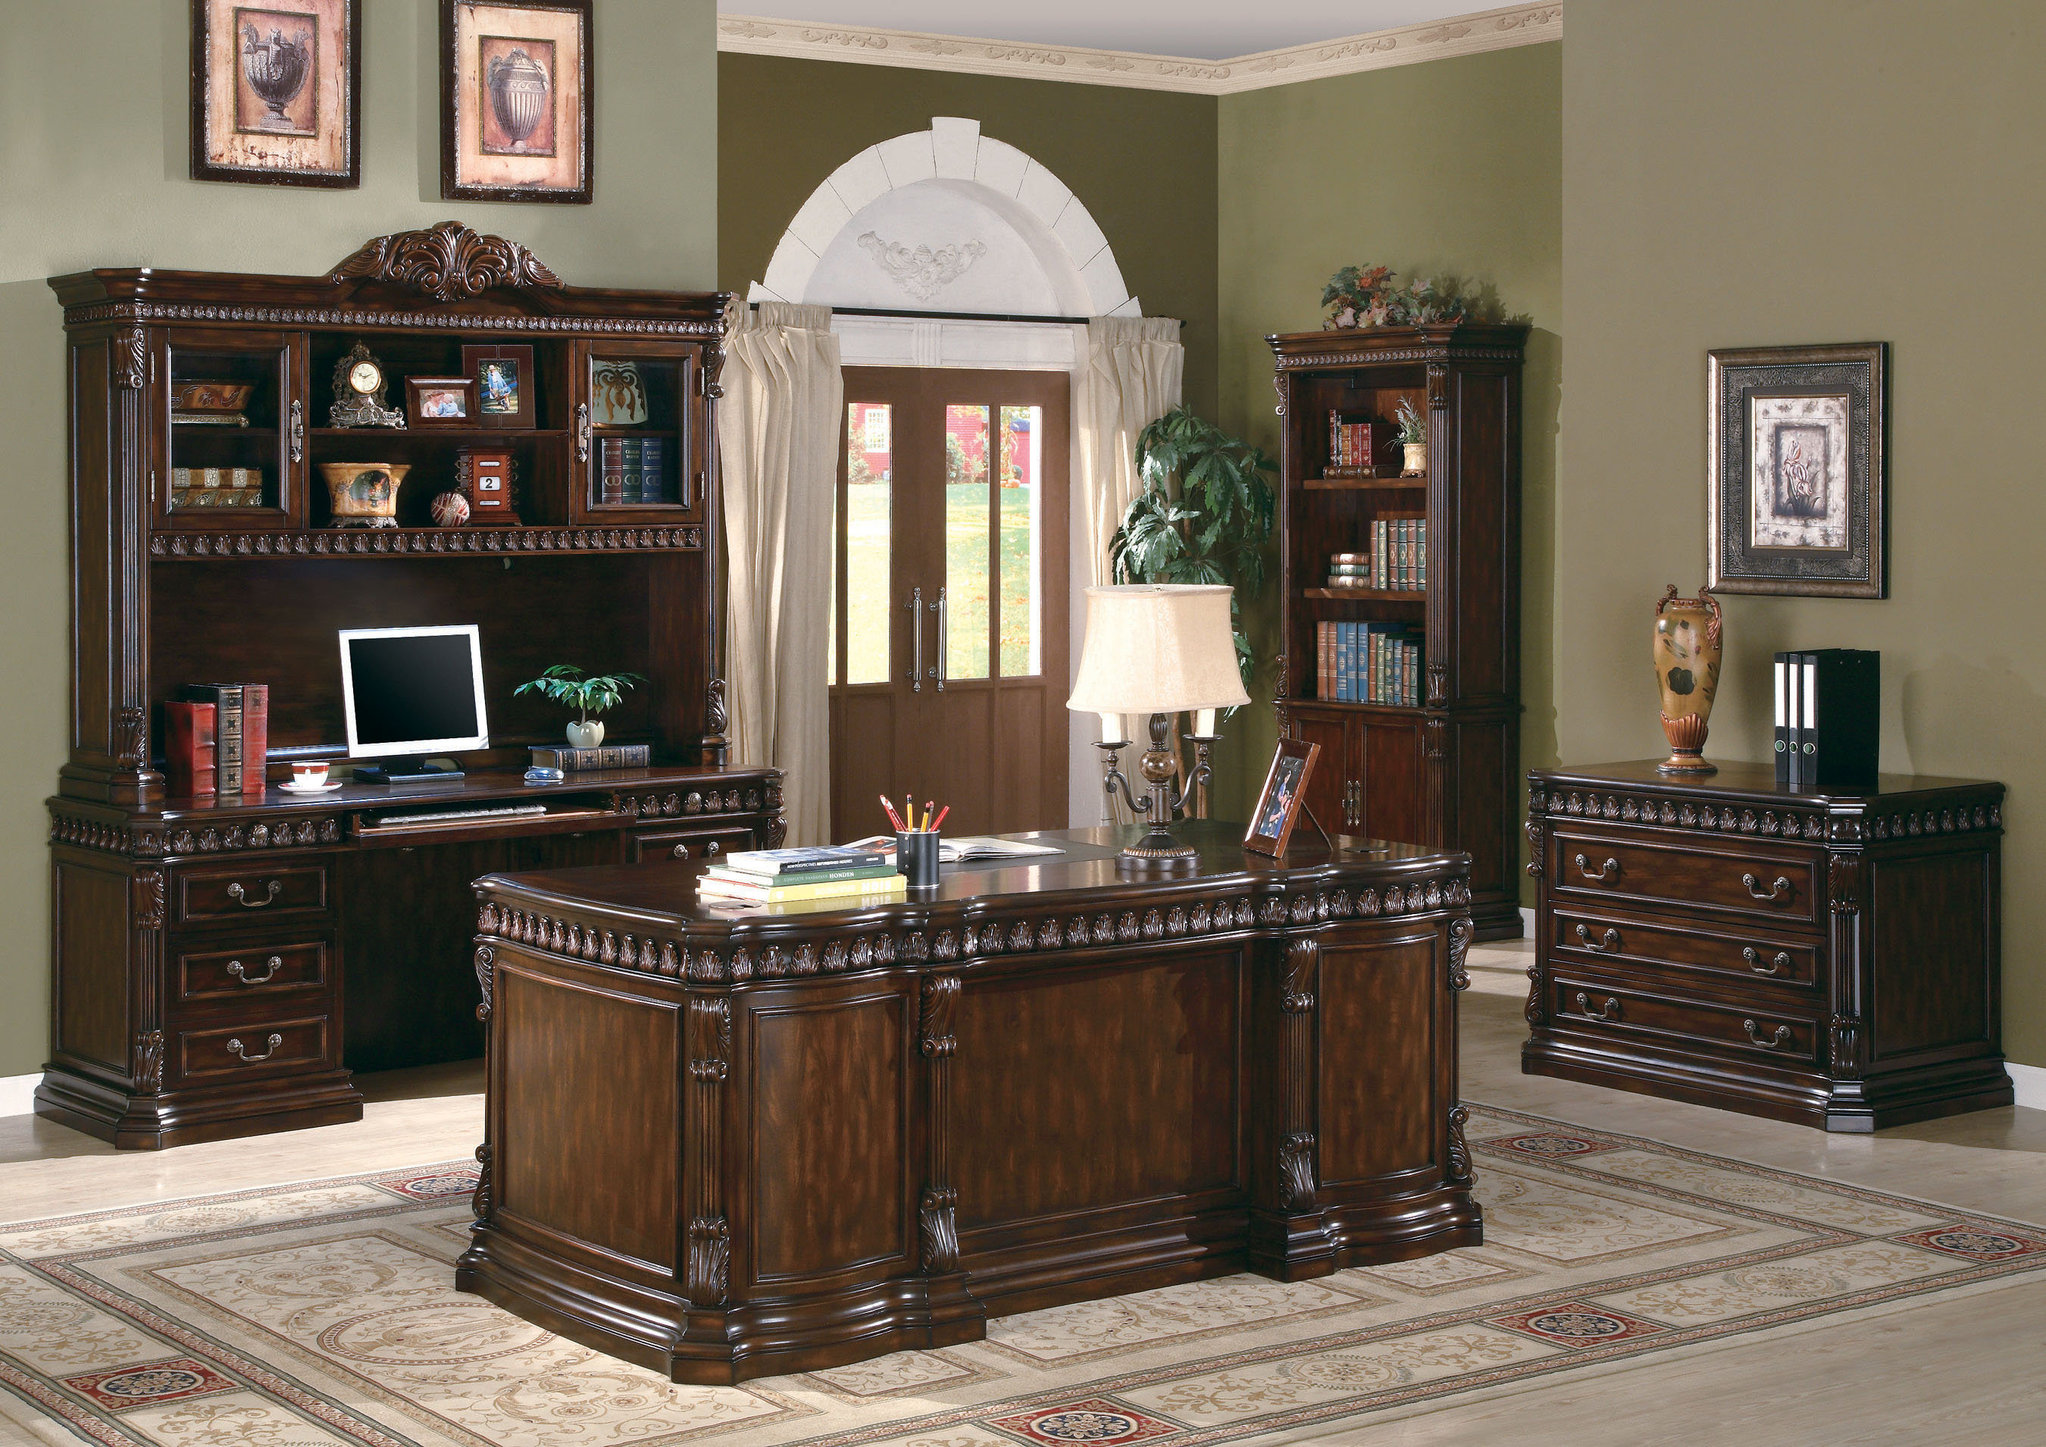 Office furniture manufacturers manufacturers lists Home furniture brands list